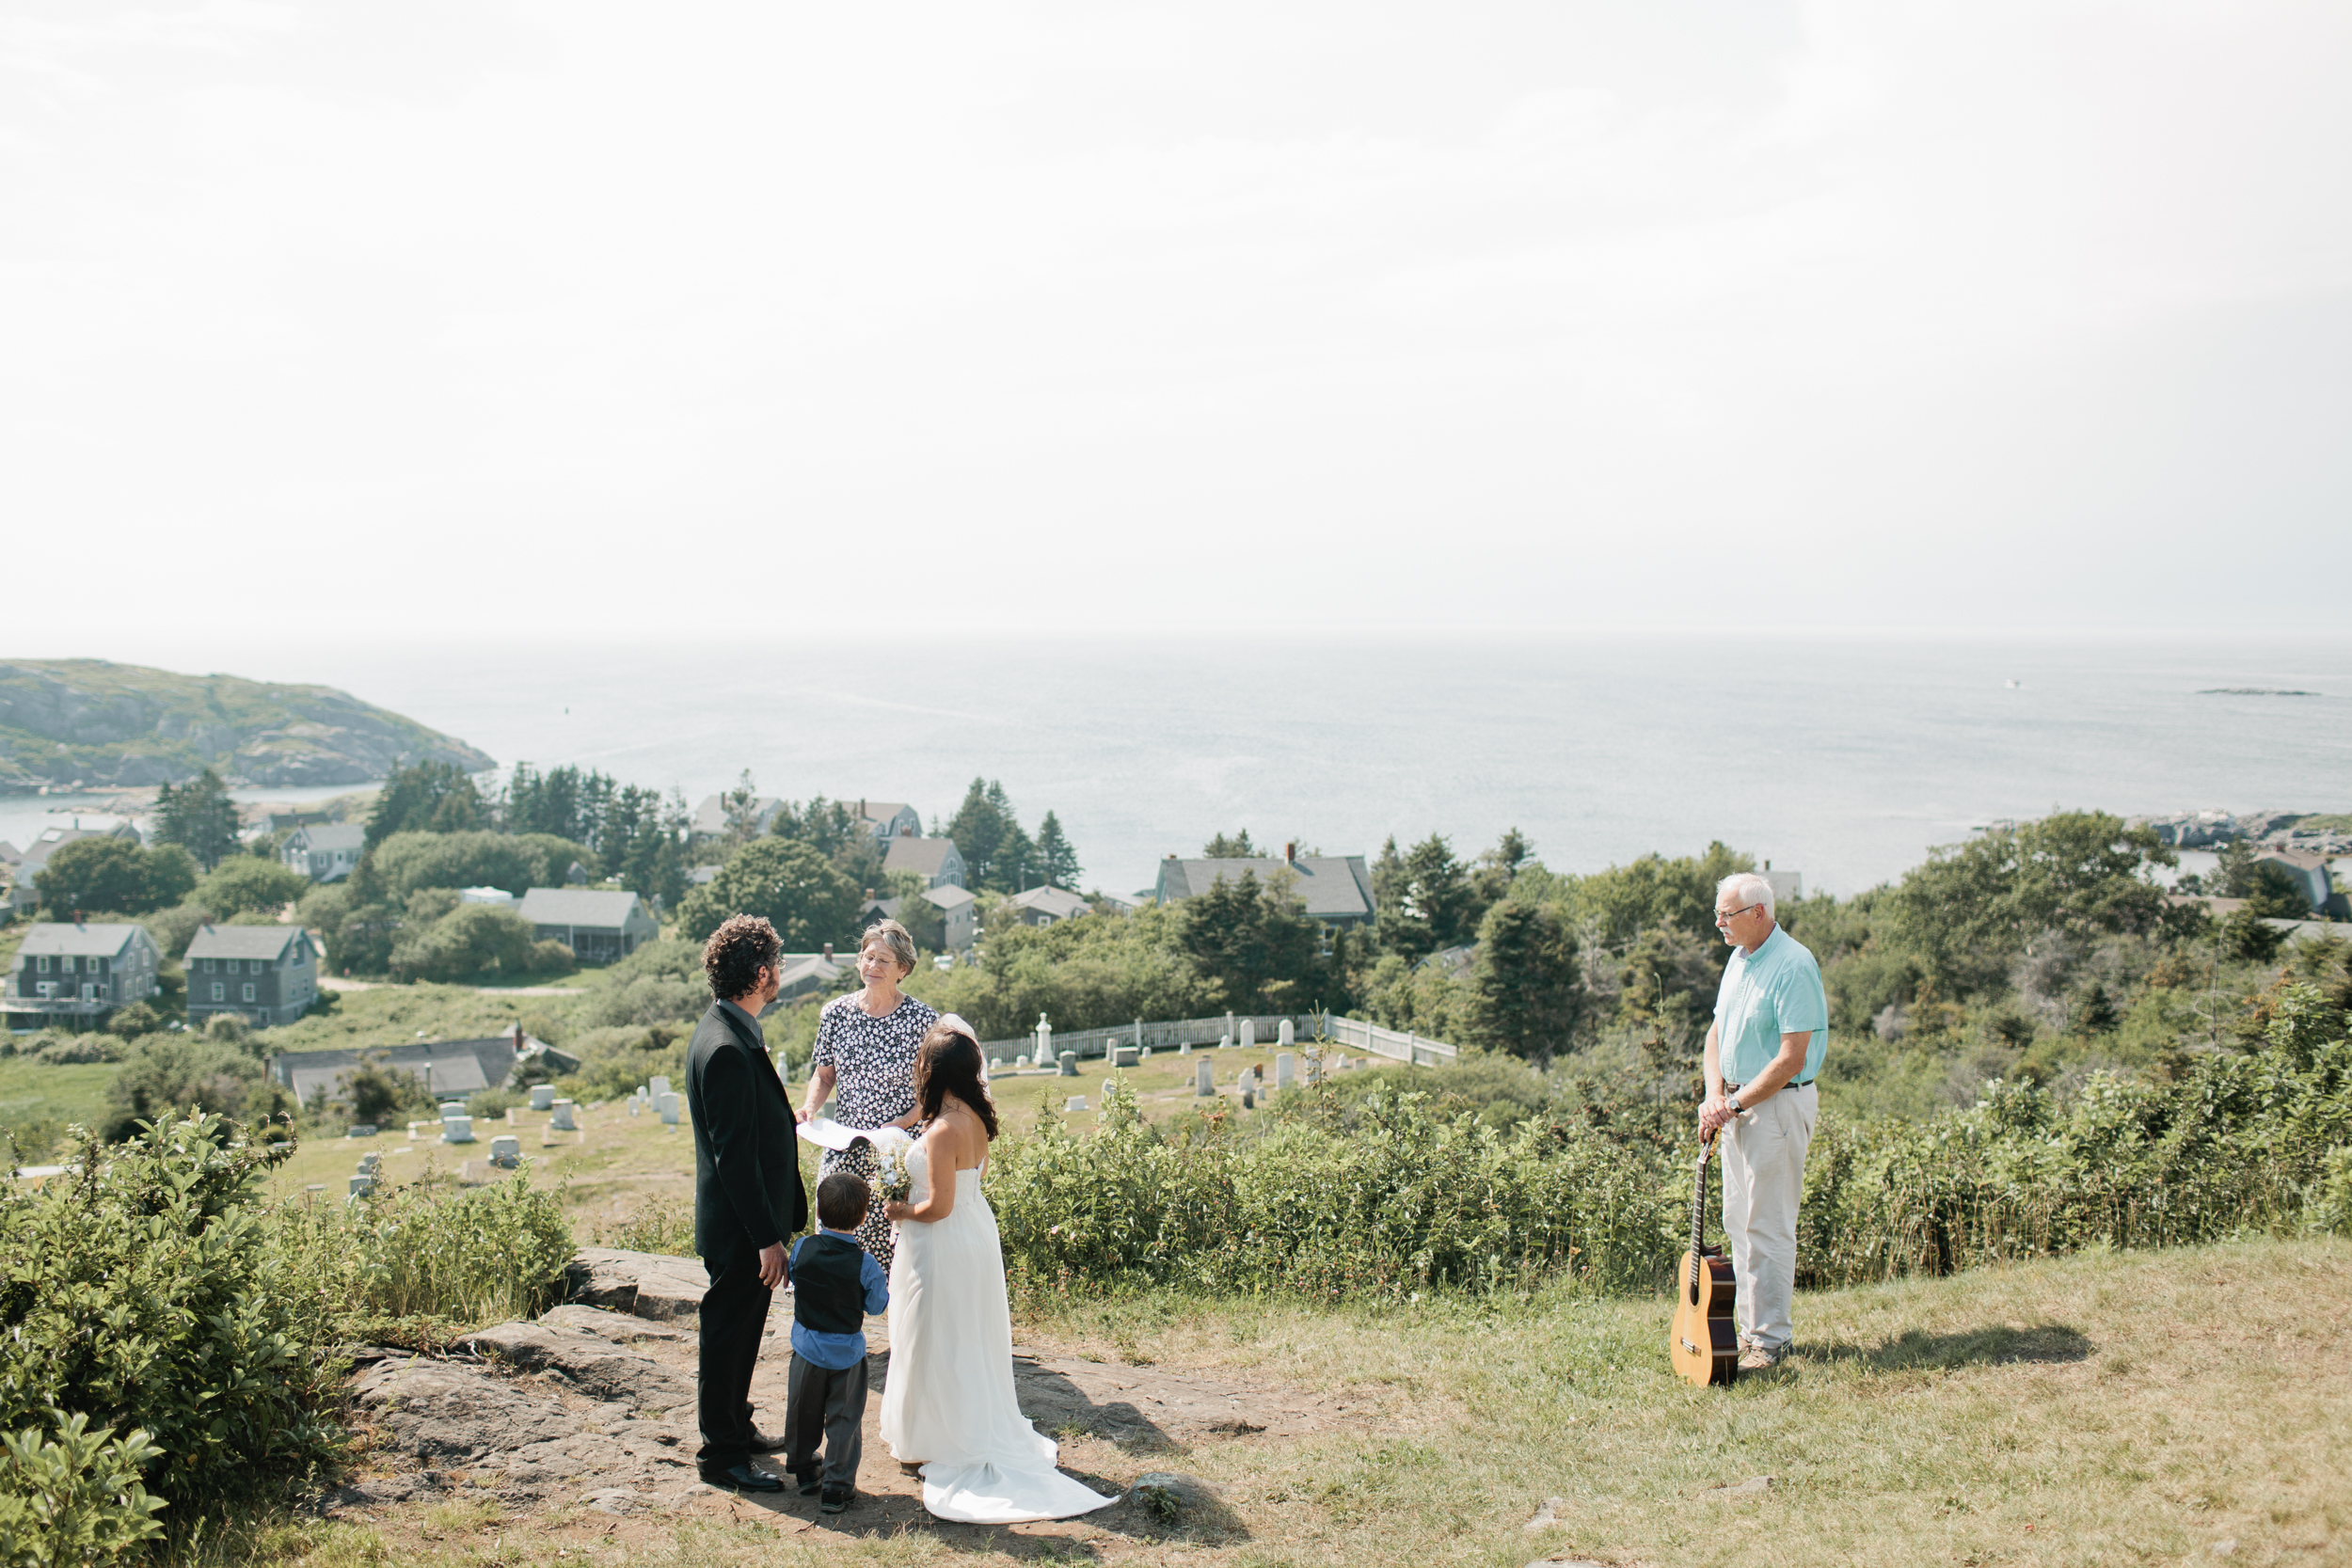 Monhegan-Island-Wedding-32.jpg